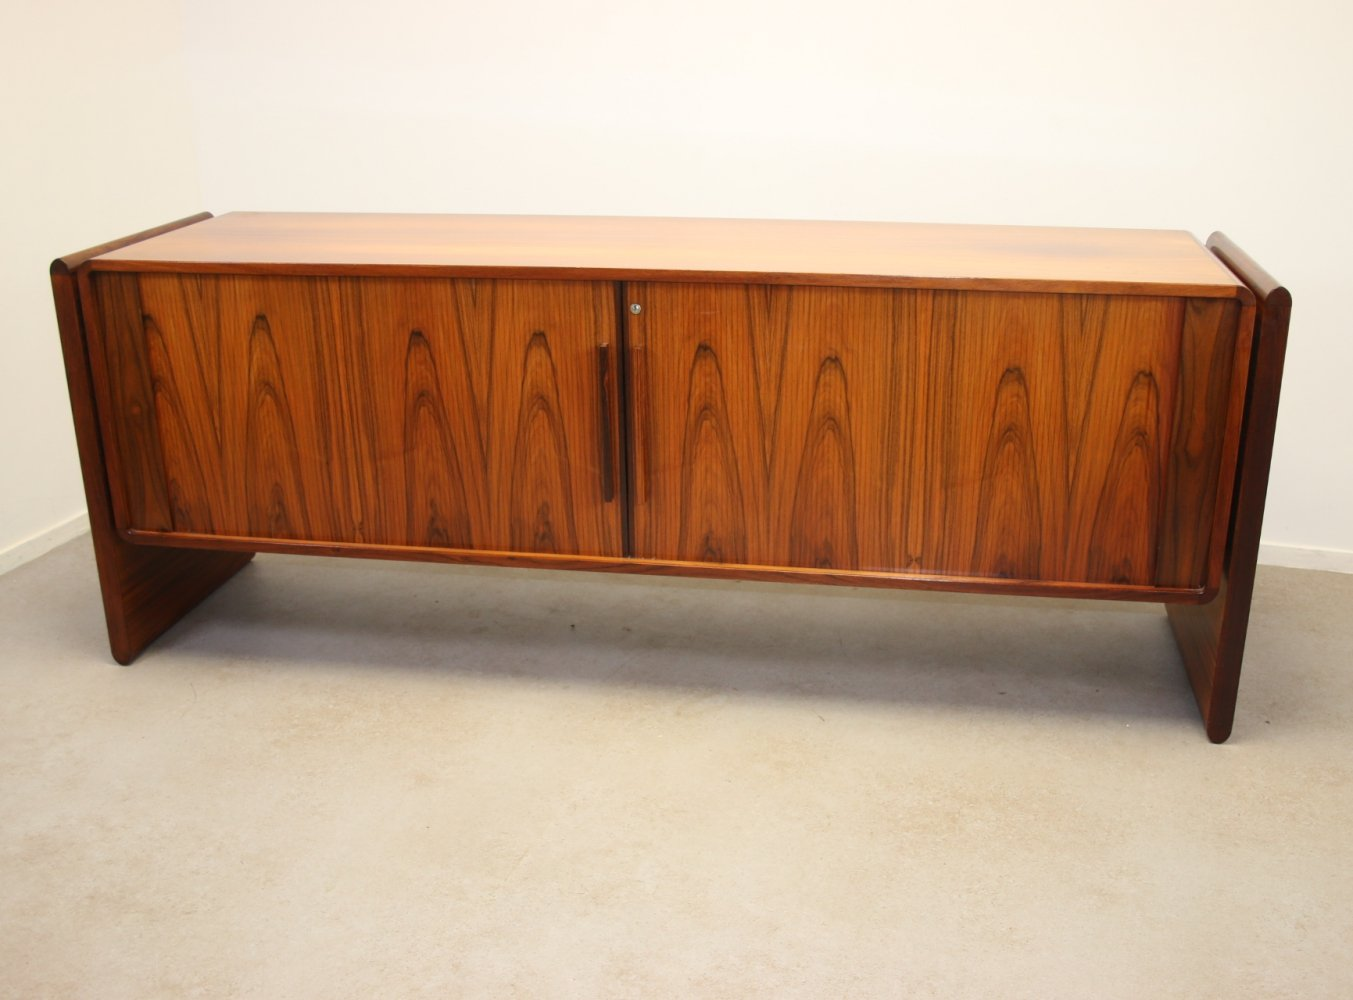 Rosewood Dyrlund sideboard with roller doors, 1960s